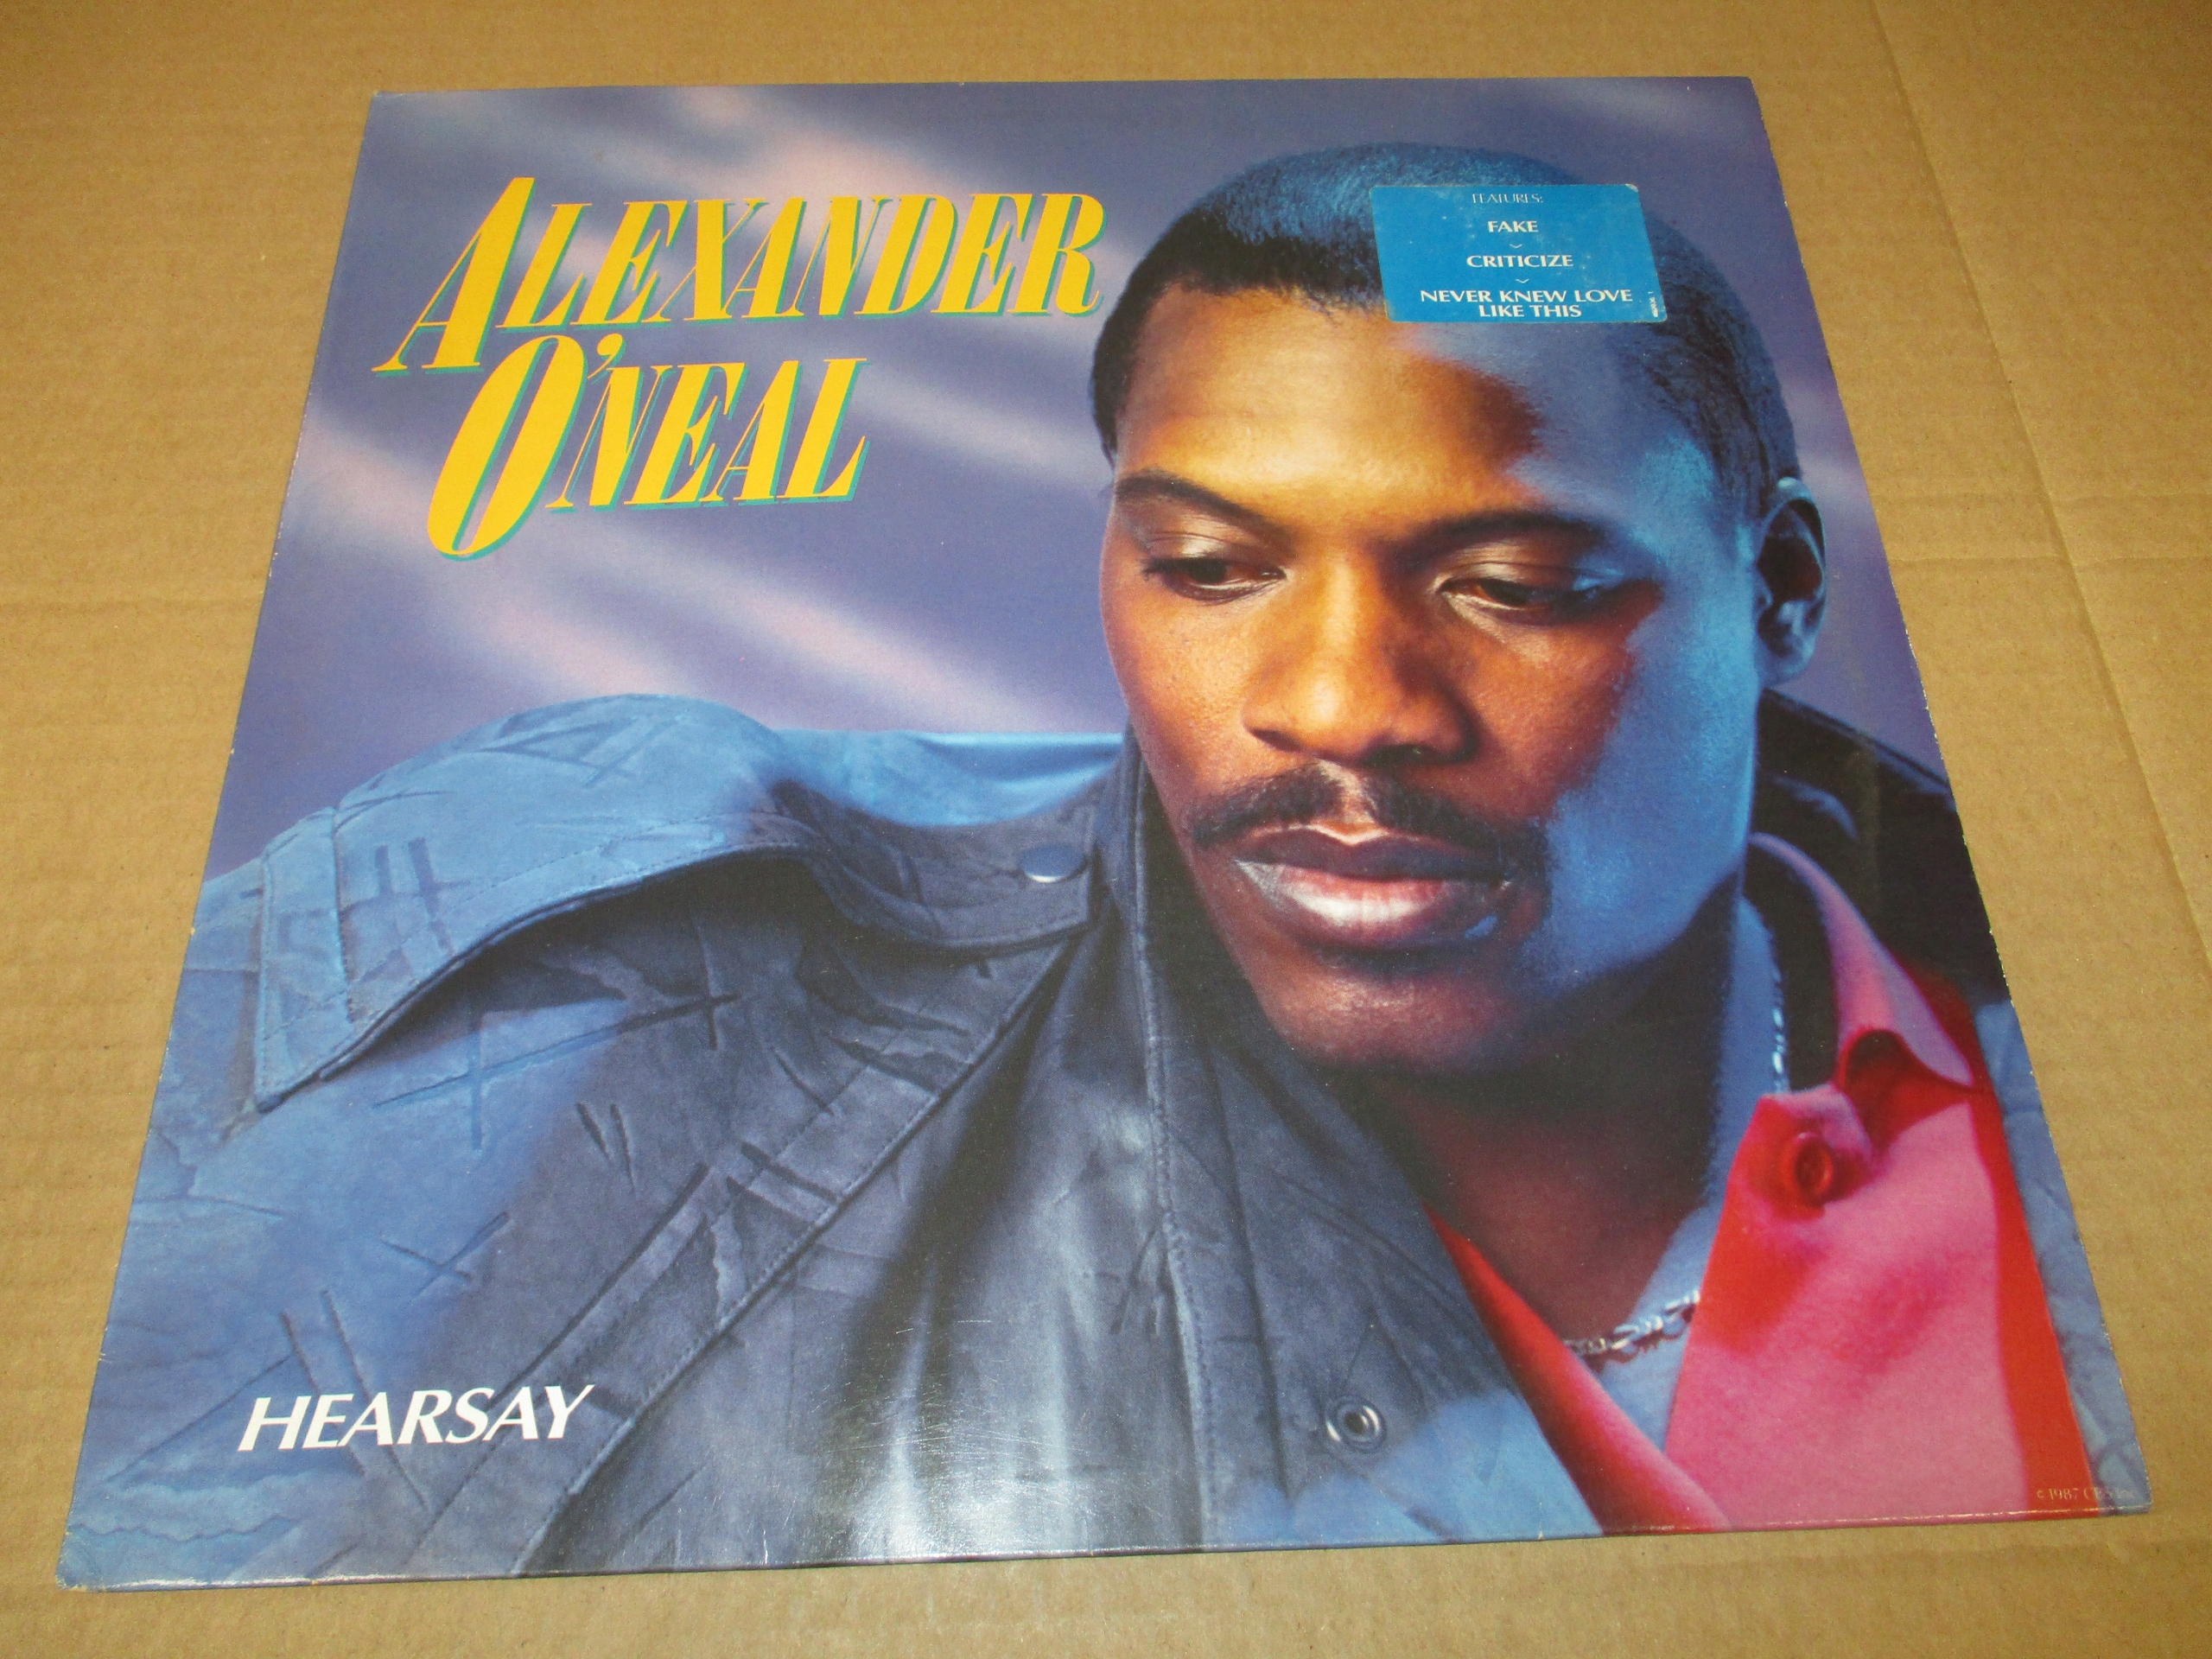 ALEXANDER O'NEAL HEARSAY LP 1987 UK